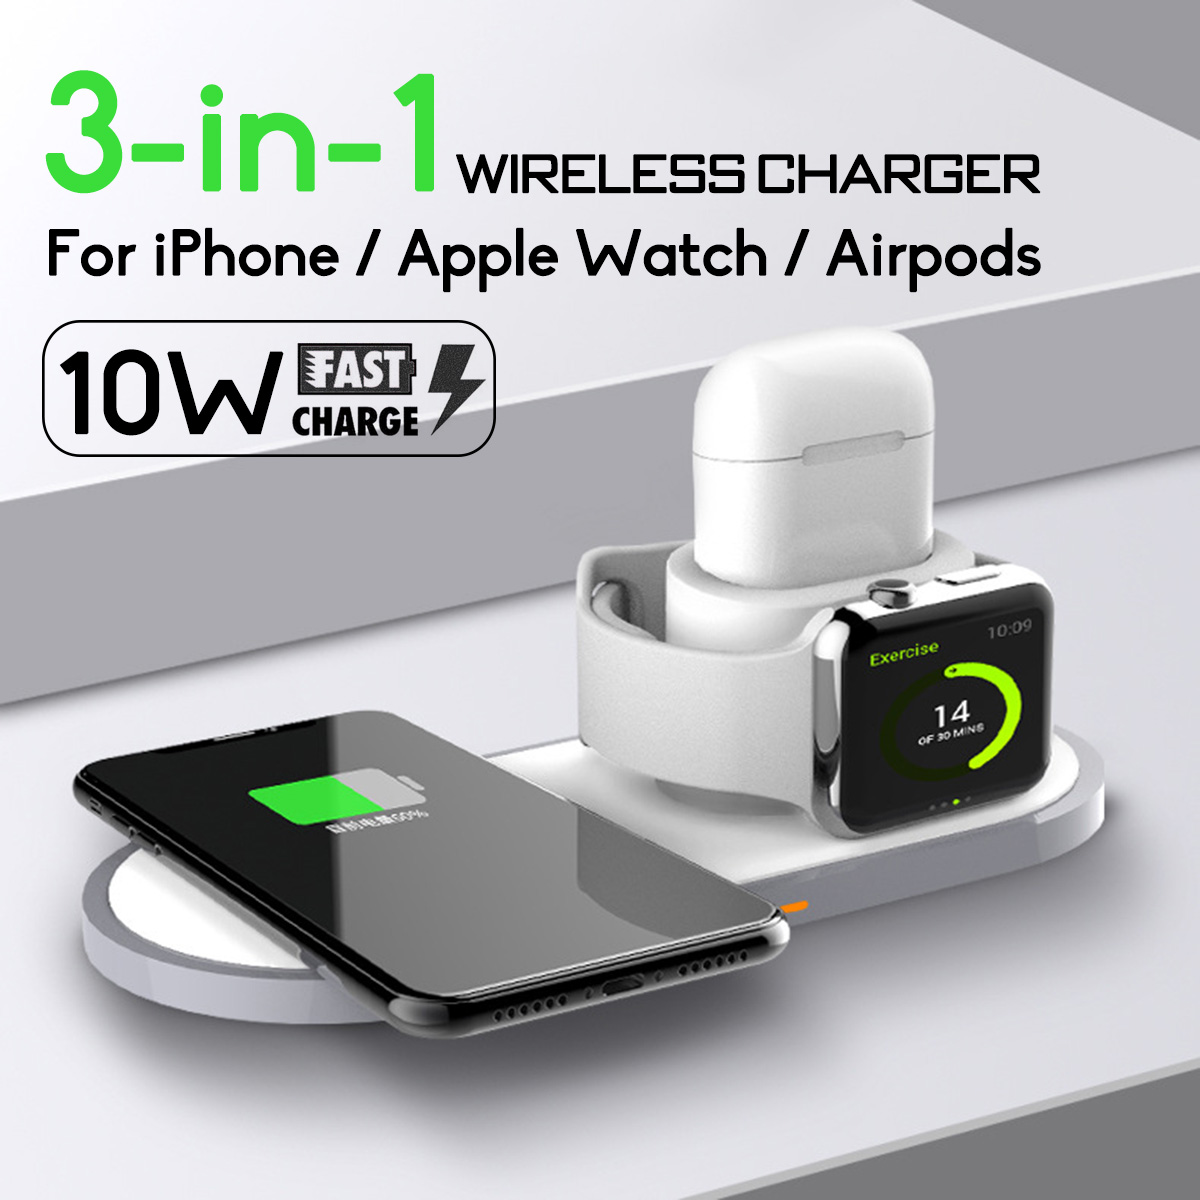 10W 3 In 1 Qi Wireless Charger Pad for AirPods Fast Charging Dock for IPhone XR XS Max for Apple Watch 2 3 4 for Samsung S9 S10e10W 3 In 1 Qi Wireless Charger Pad for AirPods Fast Charging Dock for IPhone XR XS Max for Apple Watch 2 3 4 for Samsung S9 S10e